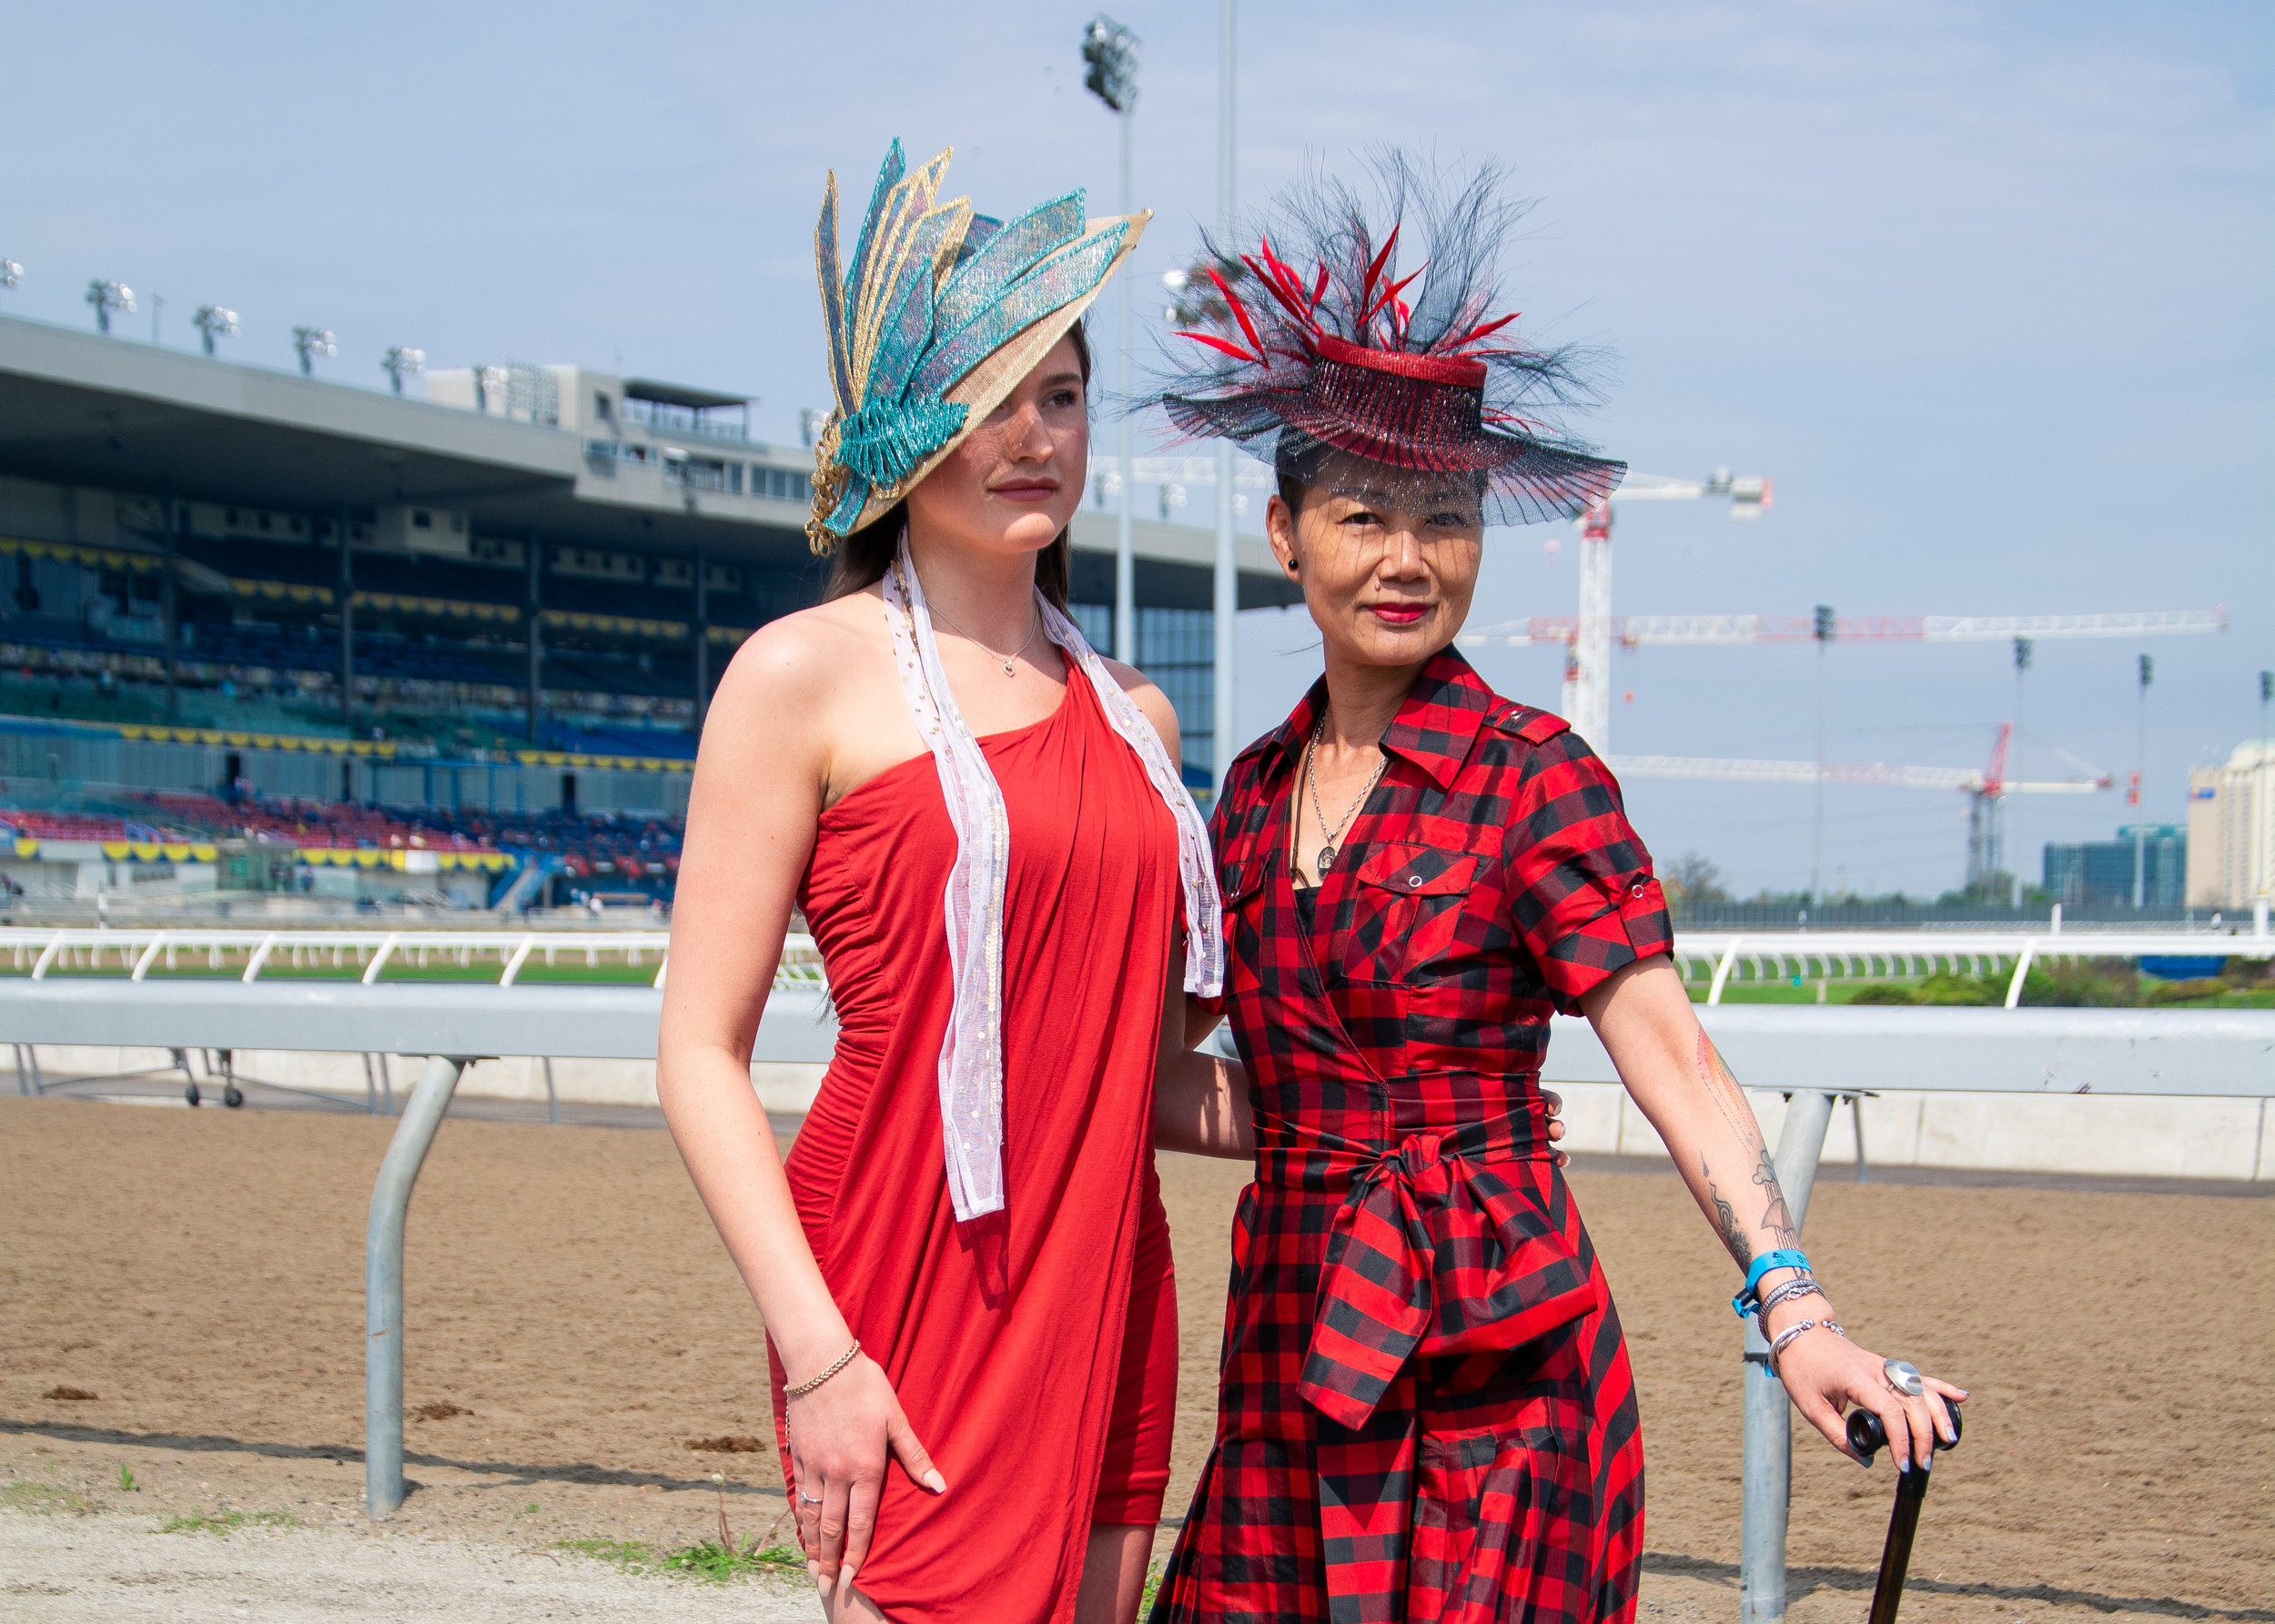 Jay Cheng from Jaycow Millinery for Greenwood Stakes by Jesús Maza_08.jpg